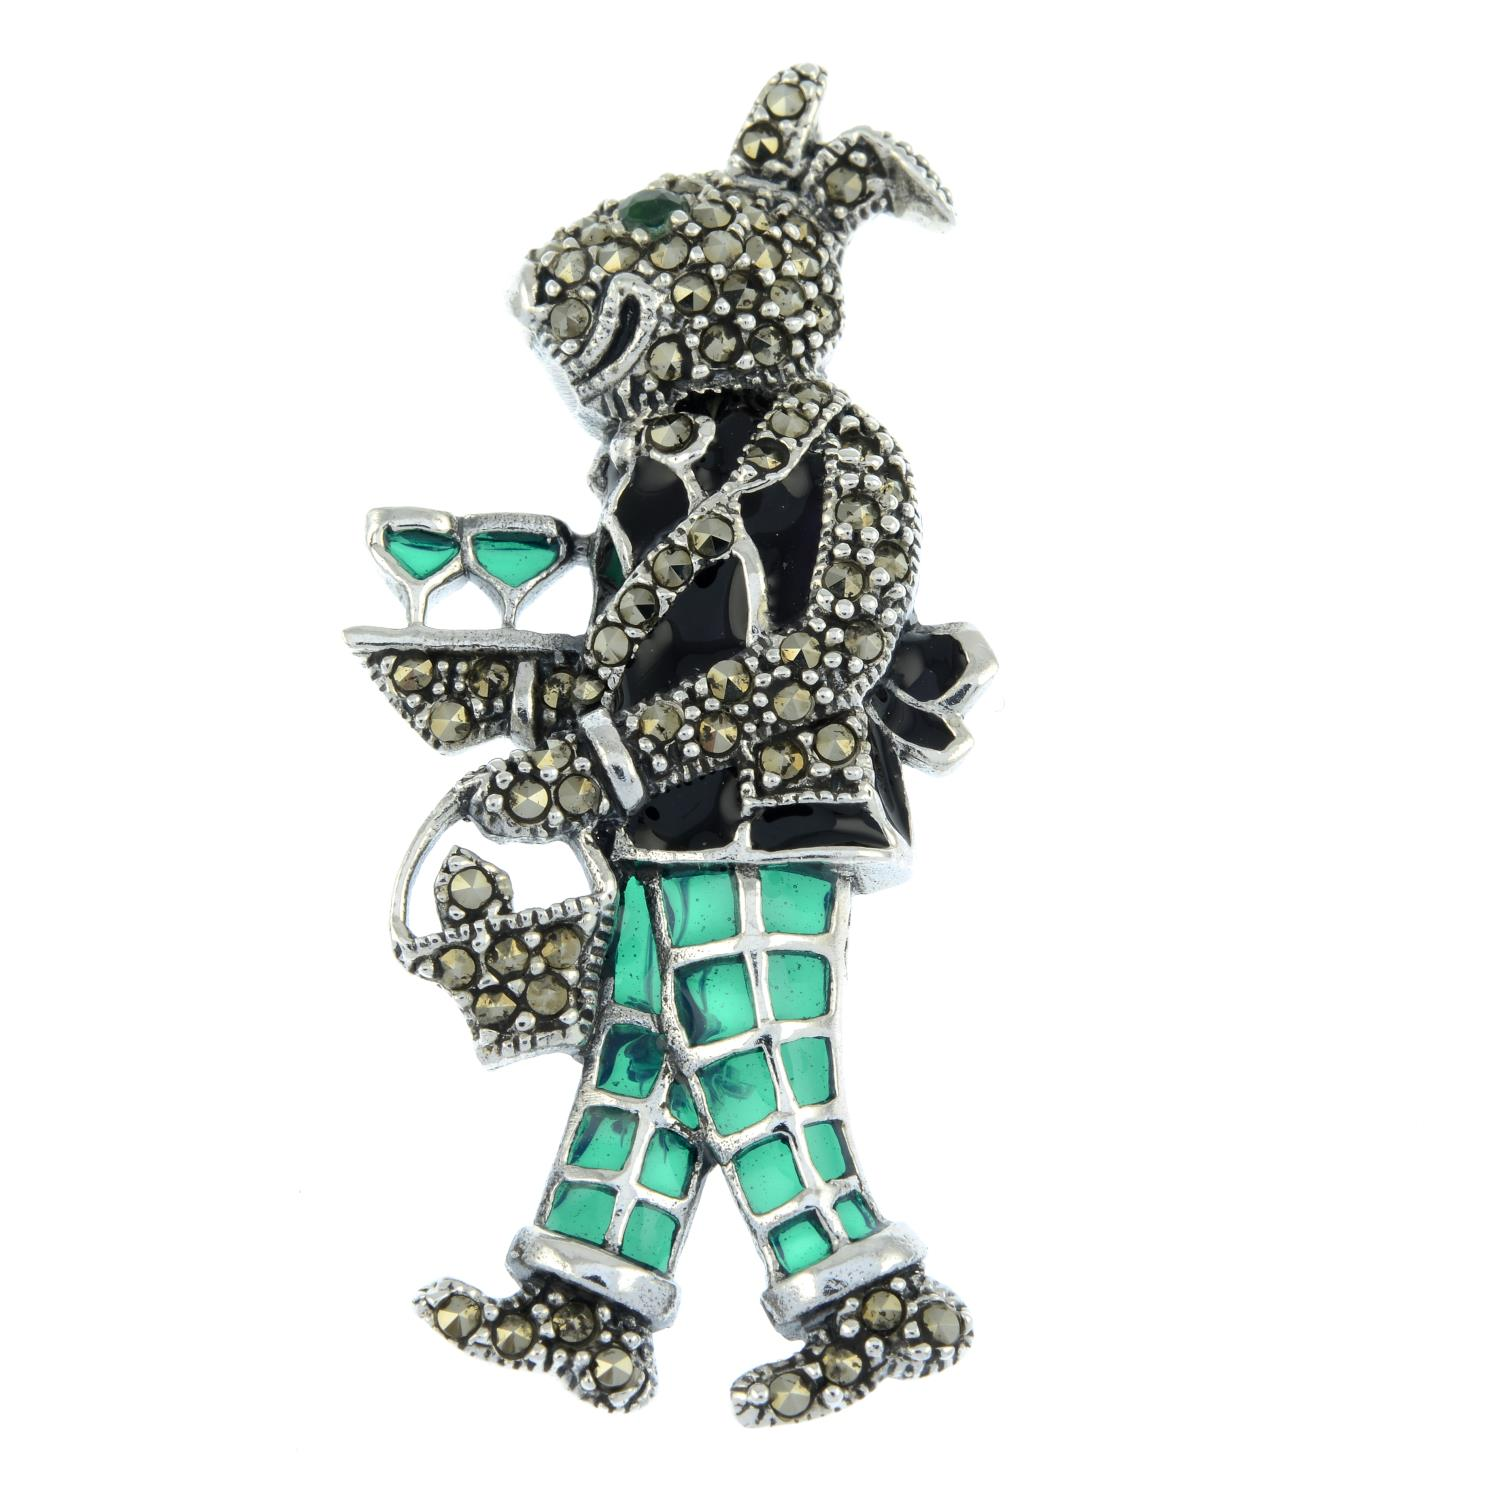 A marcasite plique-a-jour brooch of a rabbit dressed as a waiter.